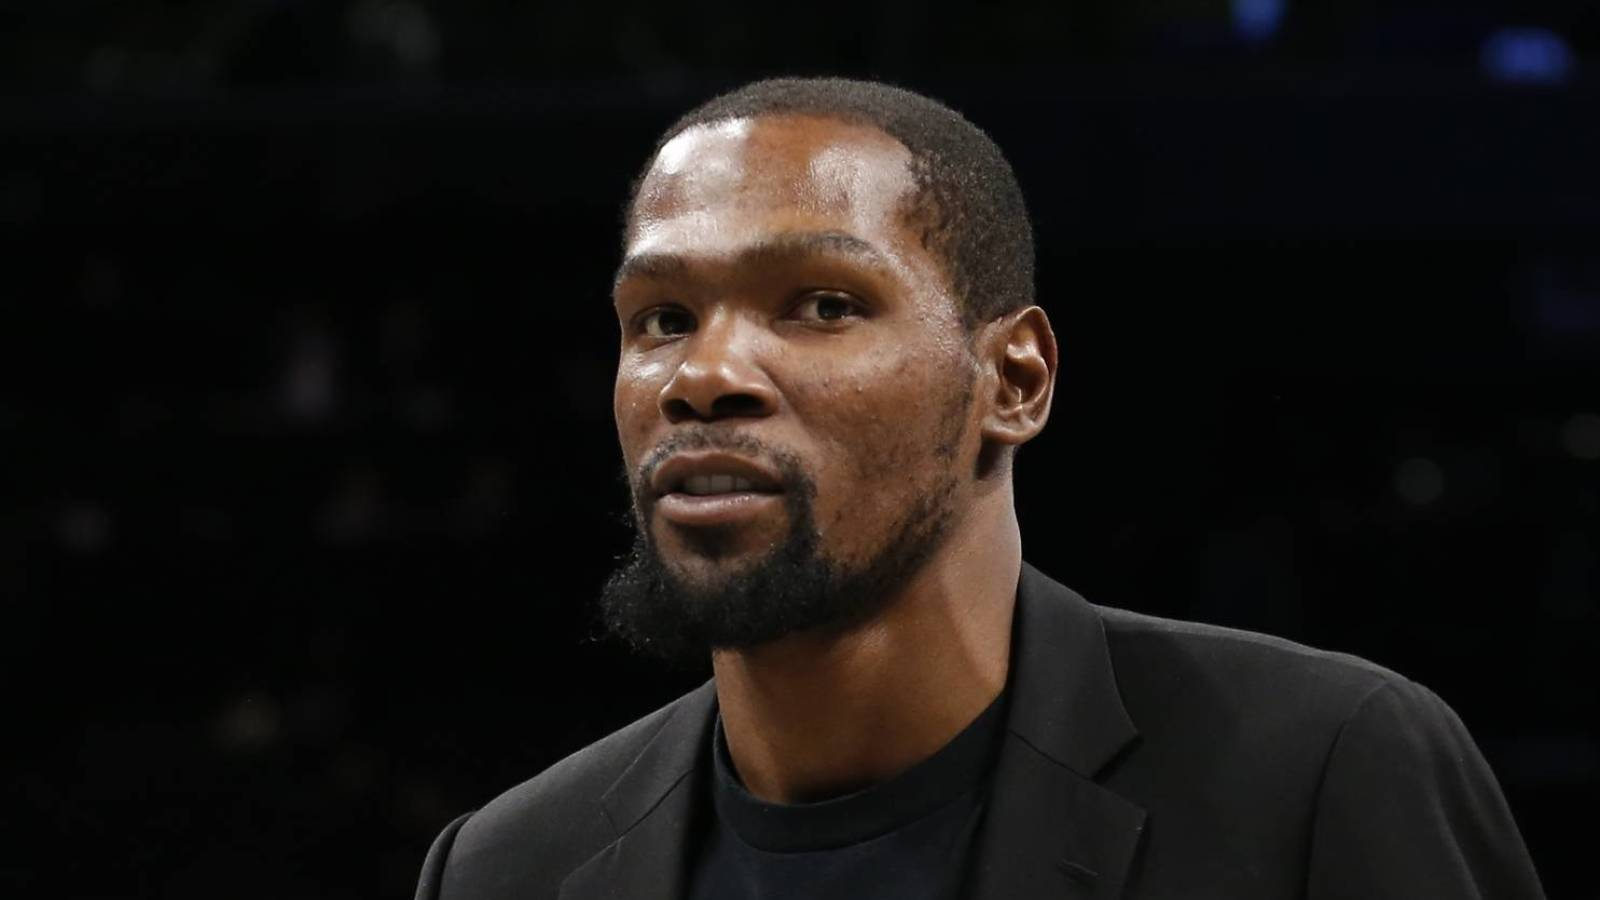 Kevin Durant earns $1 million bonus without even playing in a game